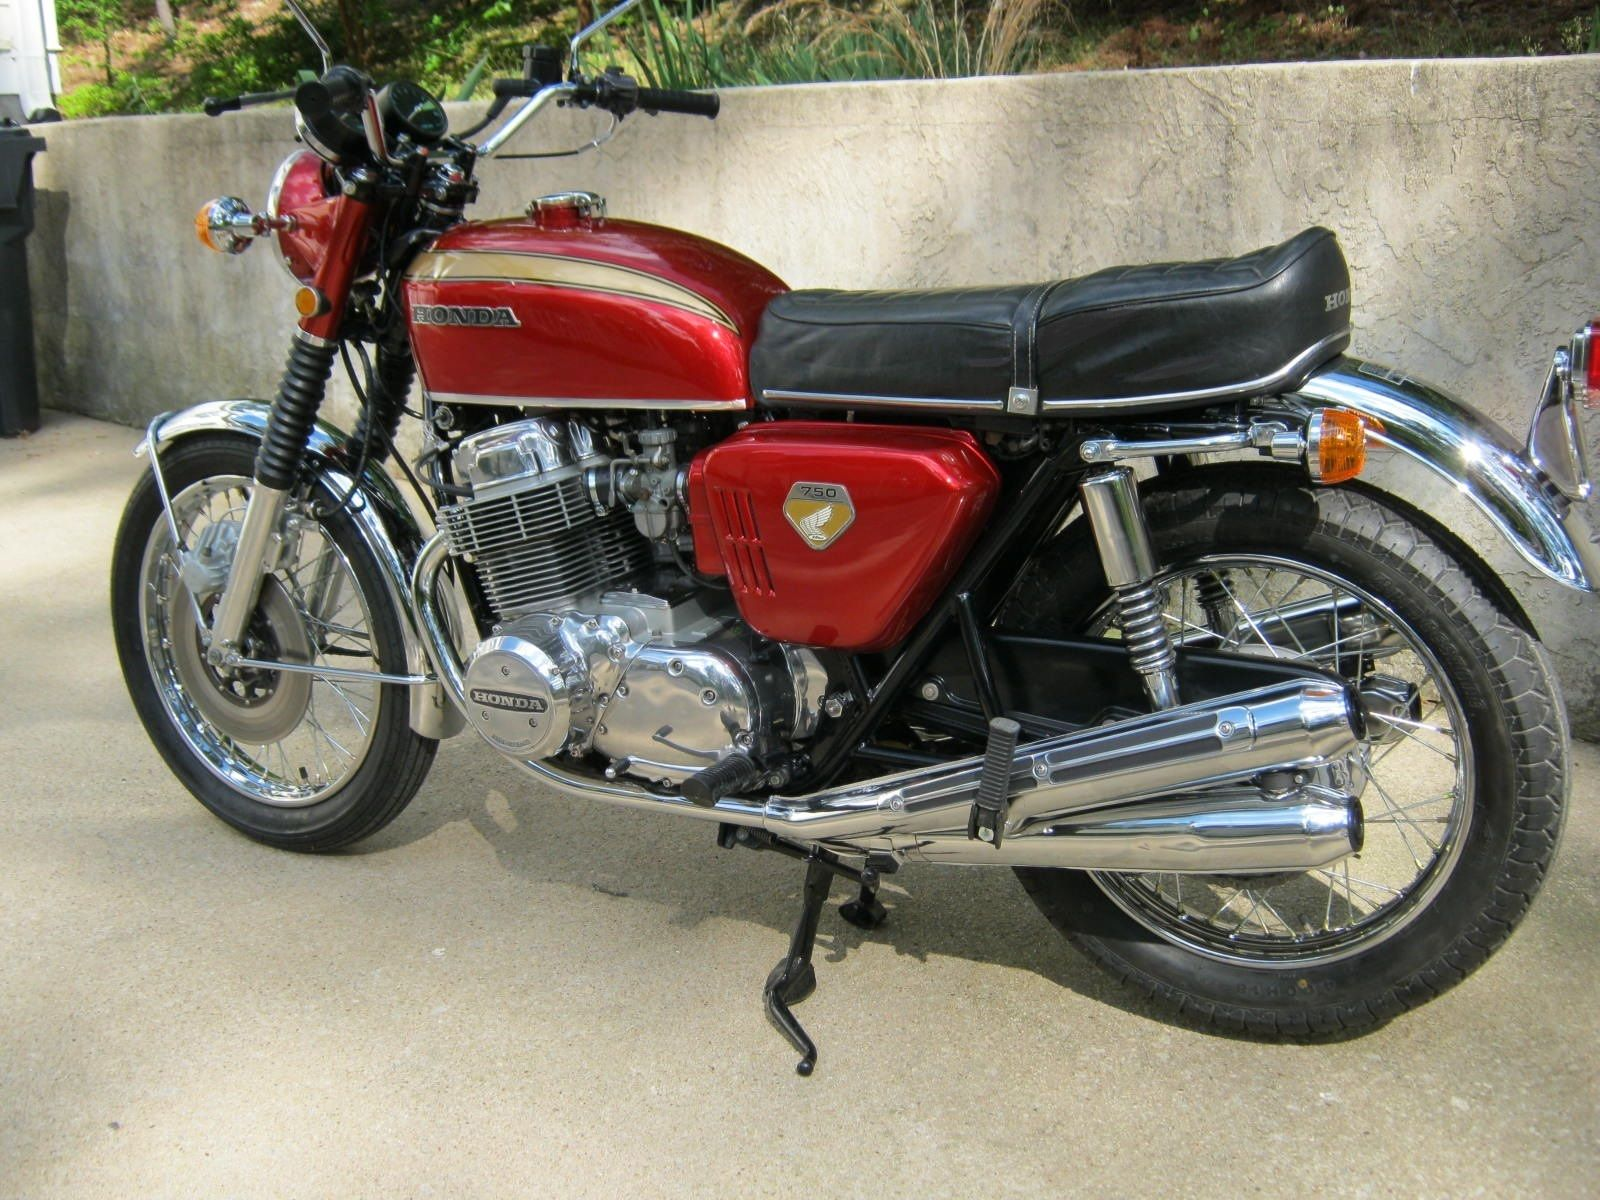 Honda CB750K0 -1969 - Motor and Transmission, Exhaust Pipes, HM300, Seat, Fuel Tank and Honda Badge.